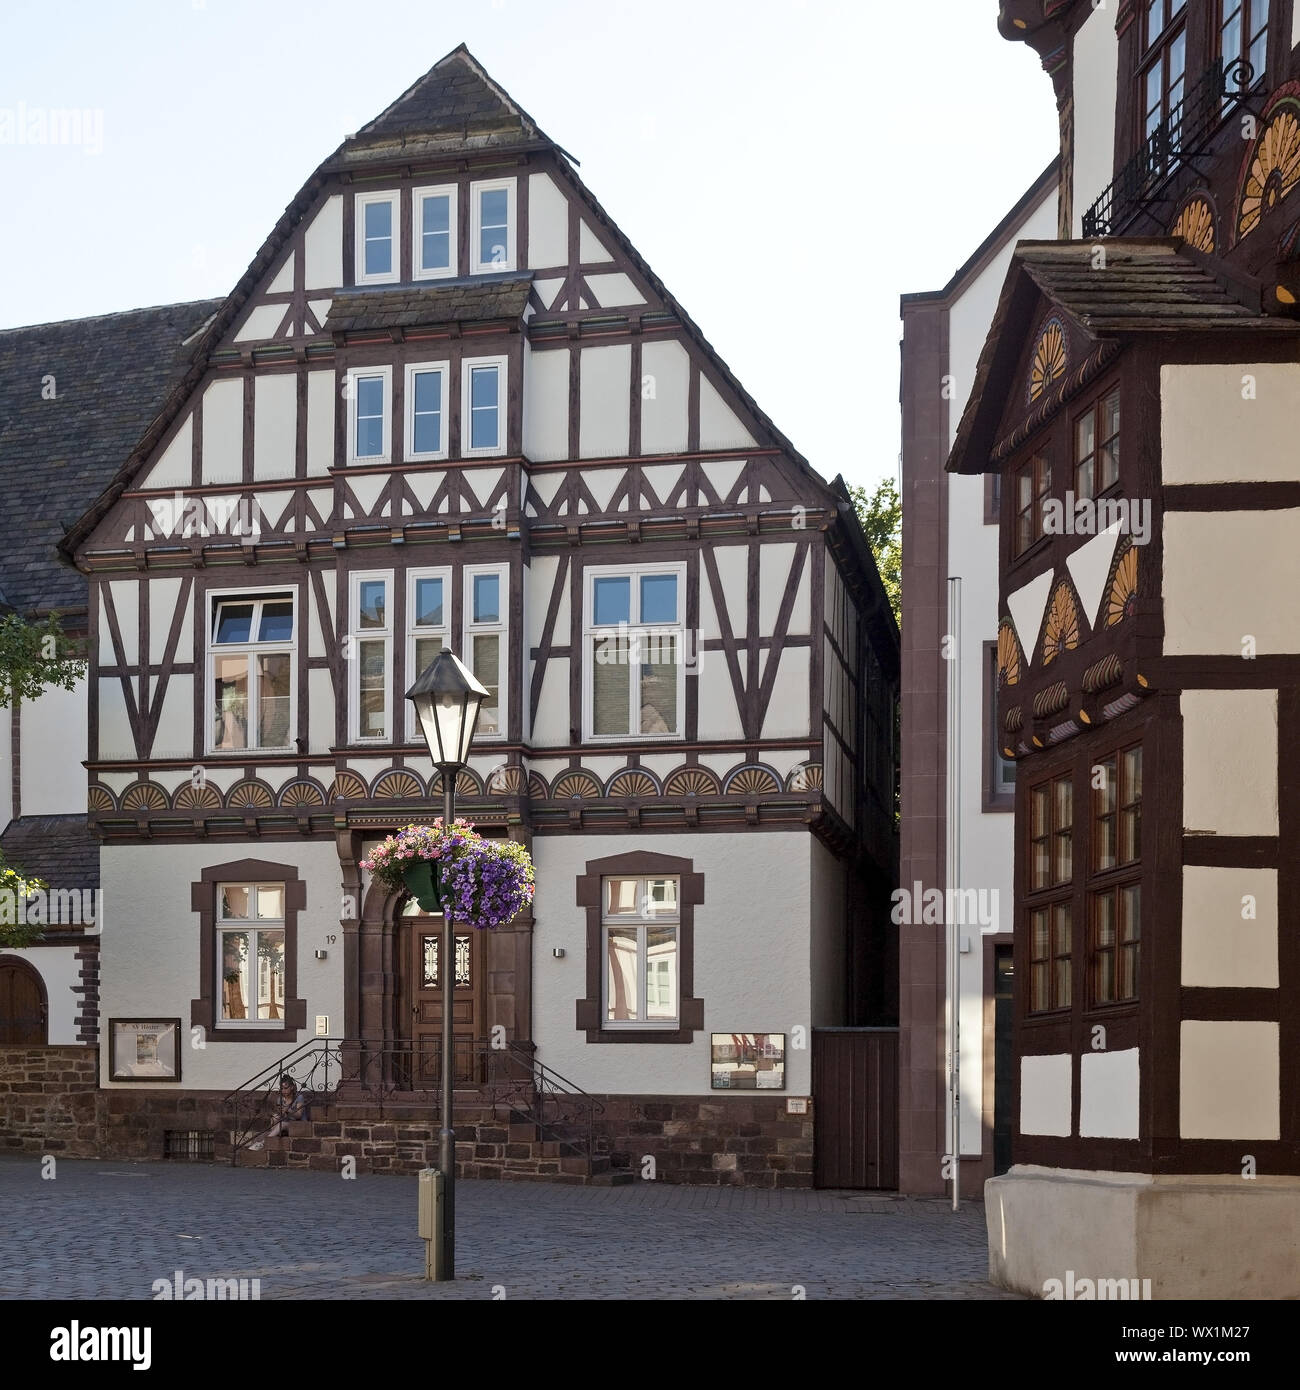 Historic half-timbered house, Old Town, Hoexter, Weserbergland, East Westphalia, Germany, Europe Stock Photo